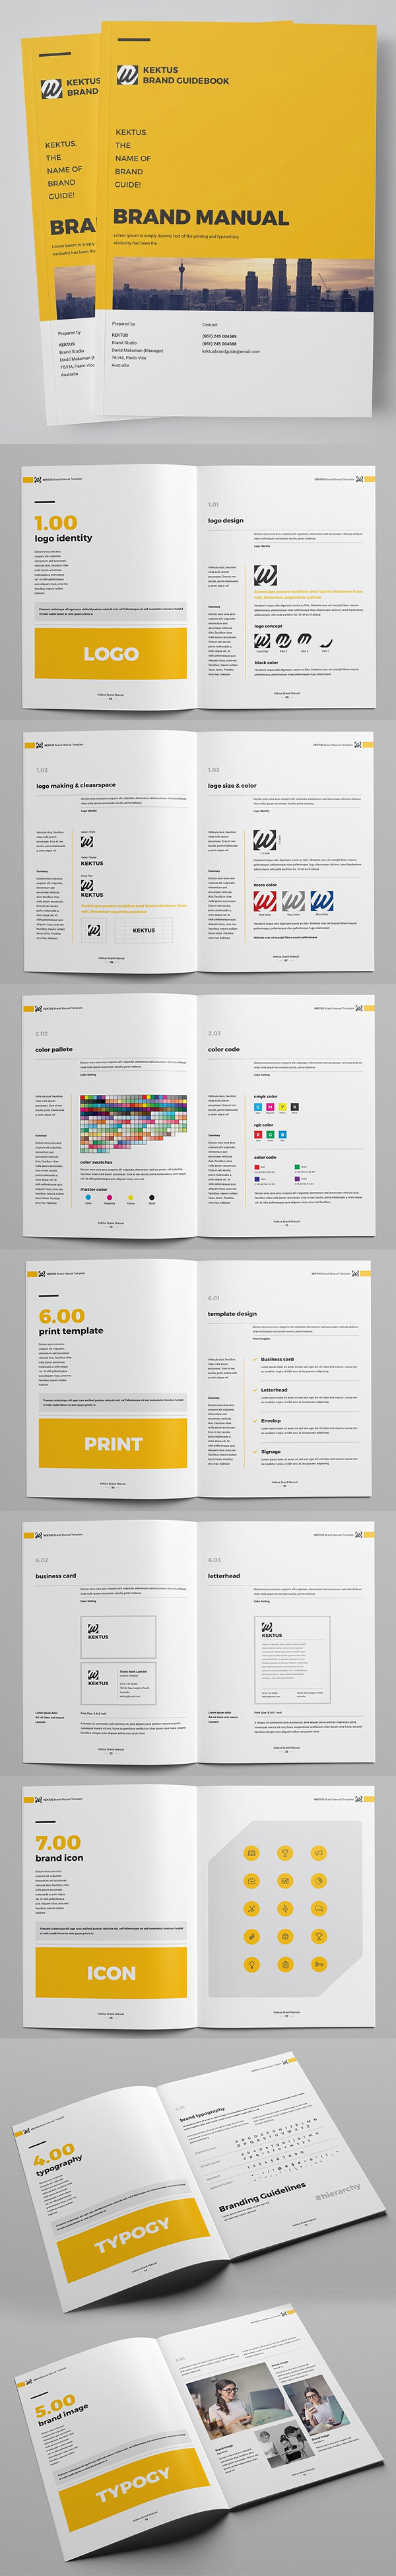 Brand Manual Brochure Design